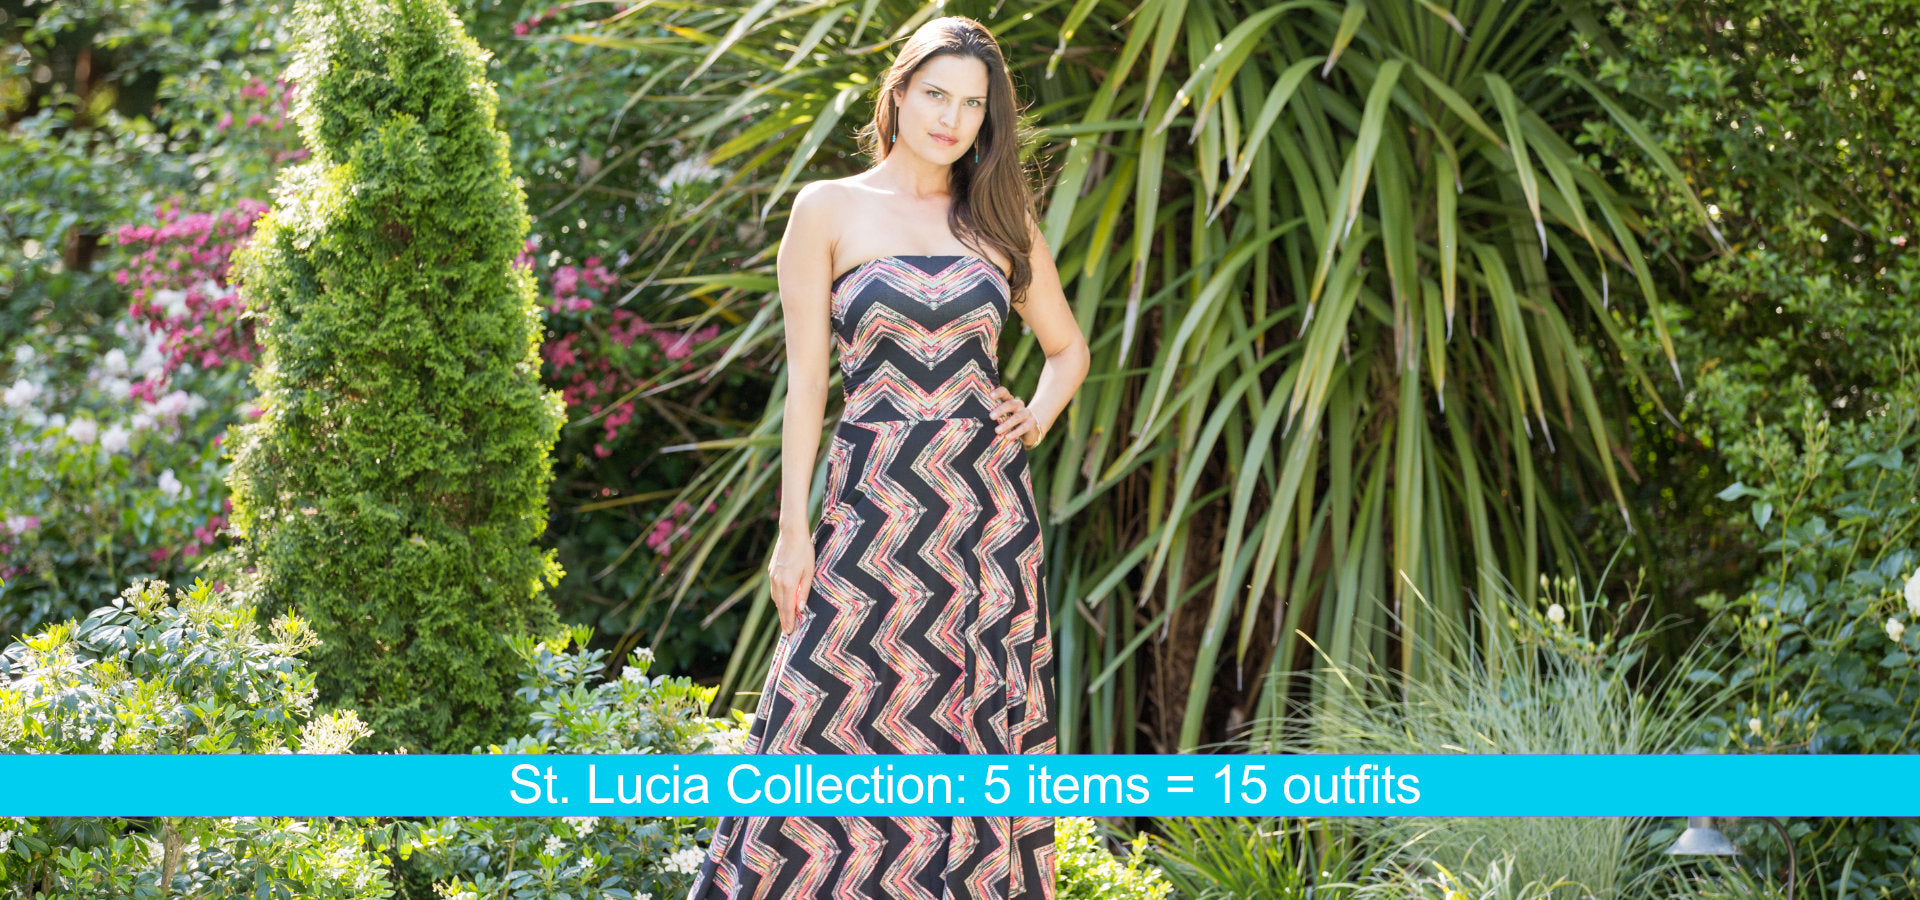 St. Lucia Collection: 5 items = 16 outfits